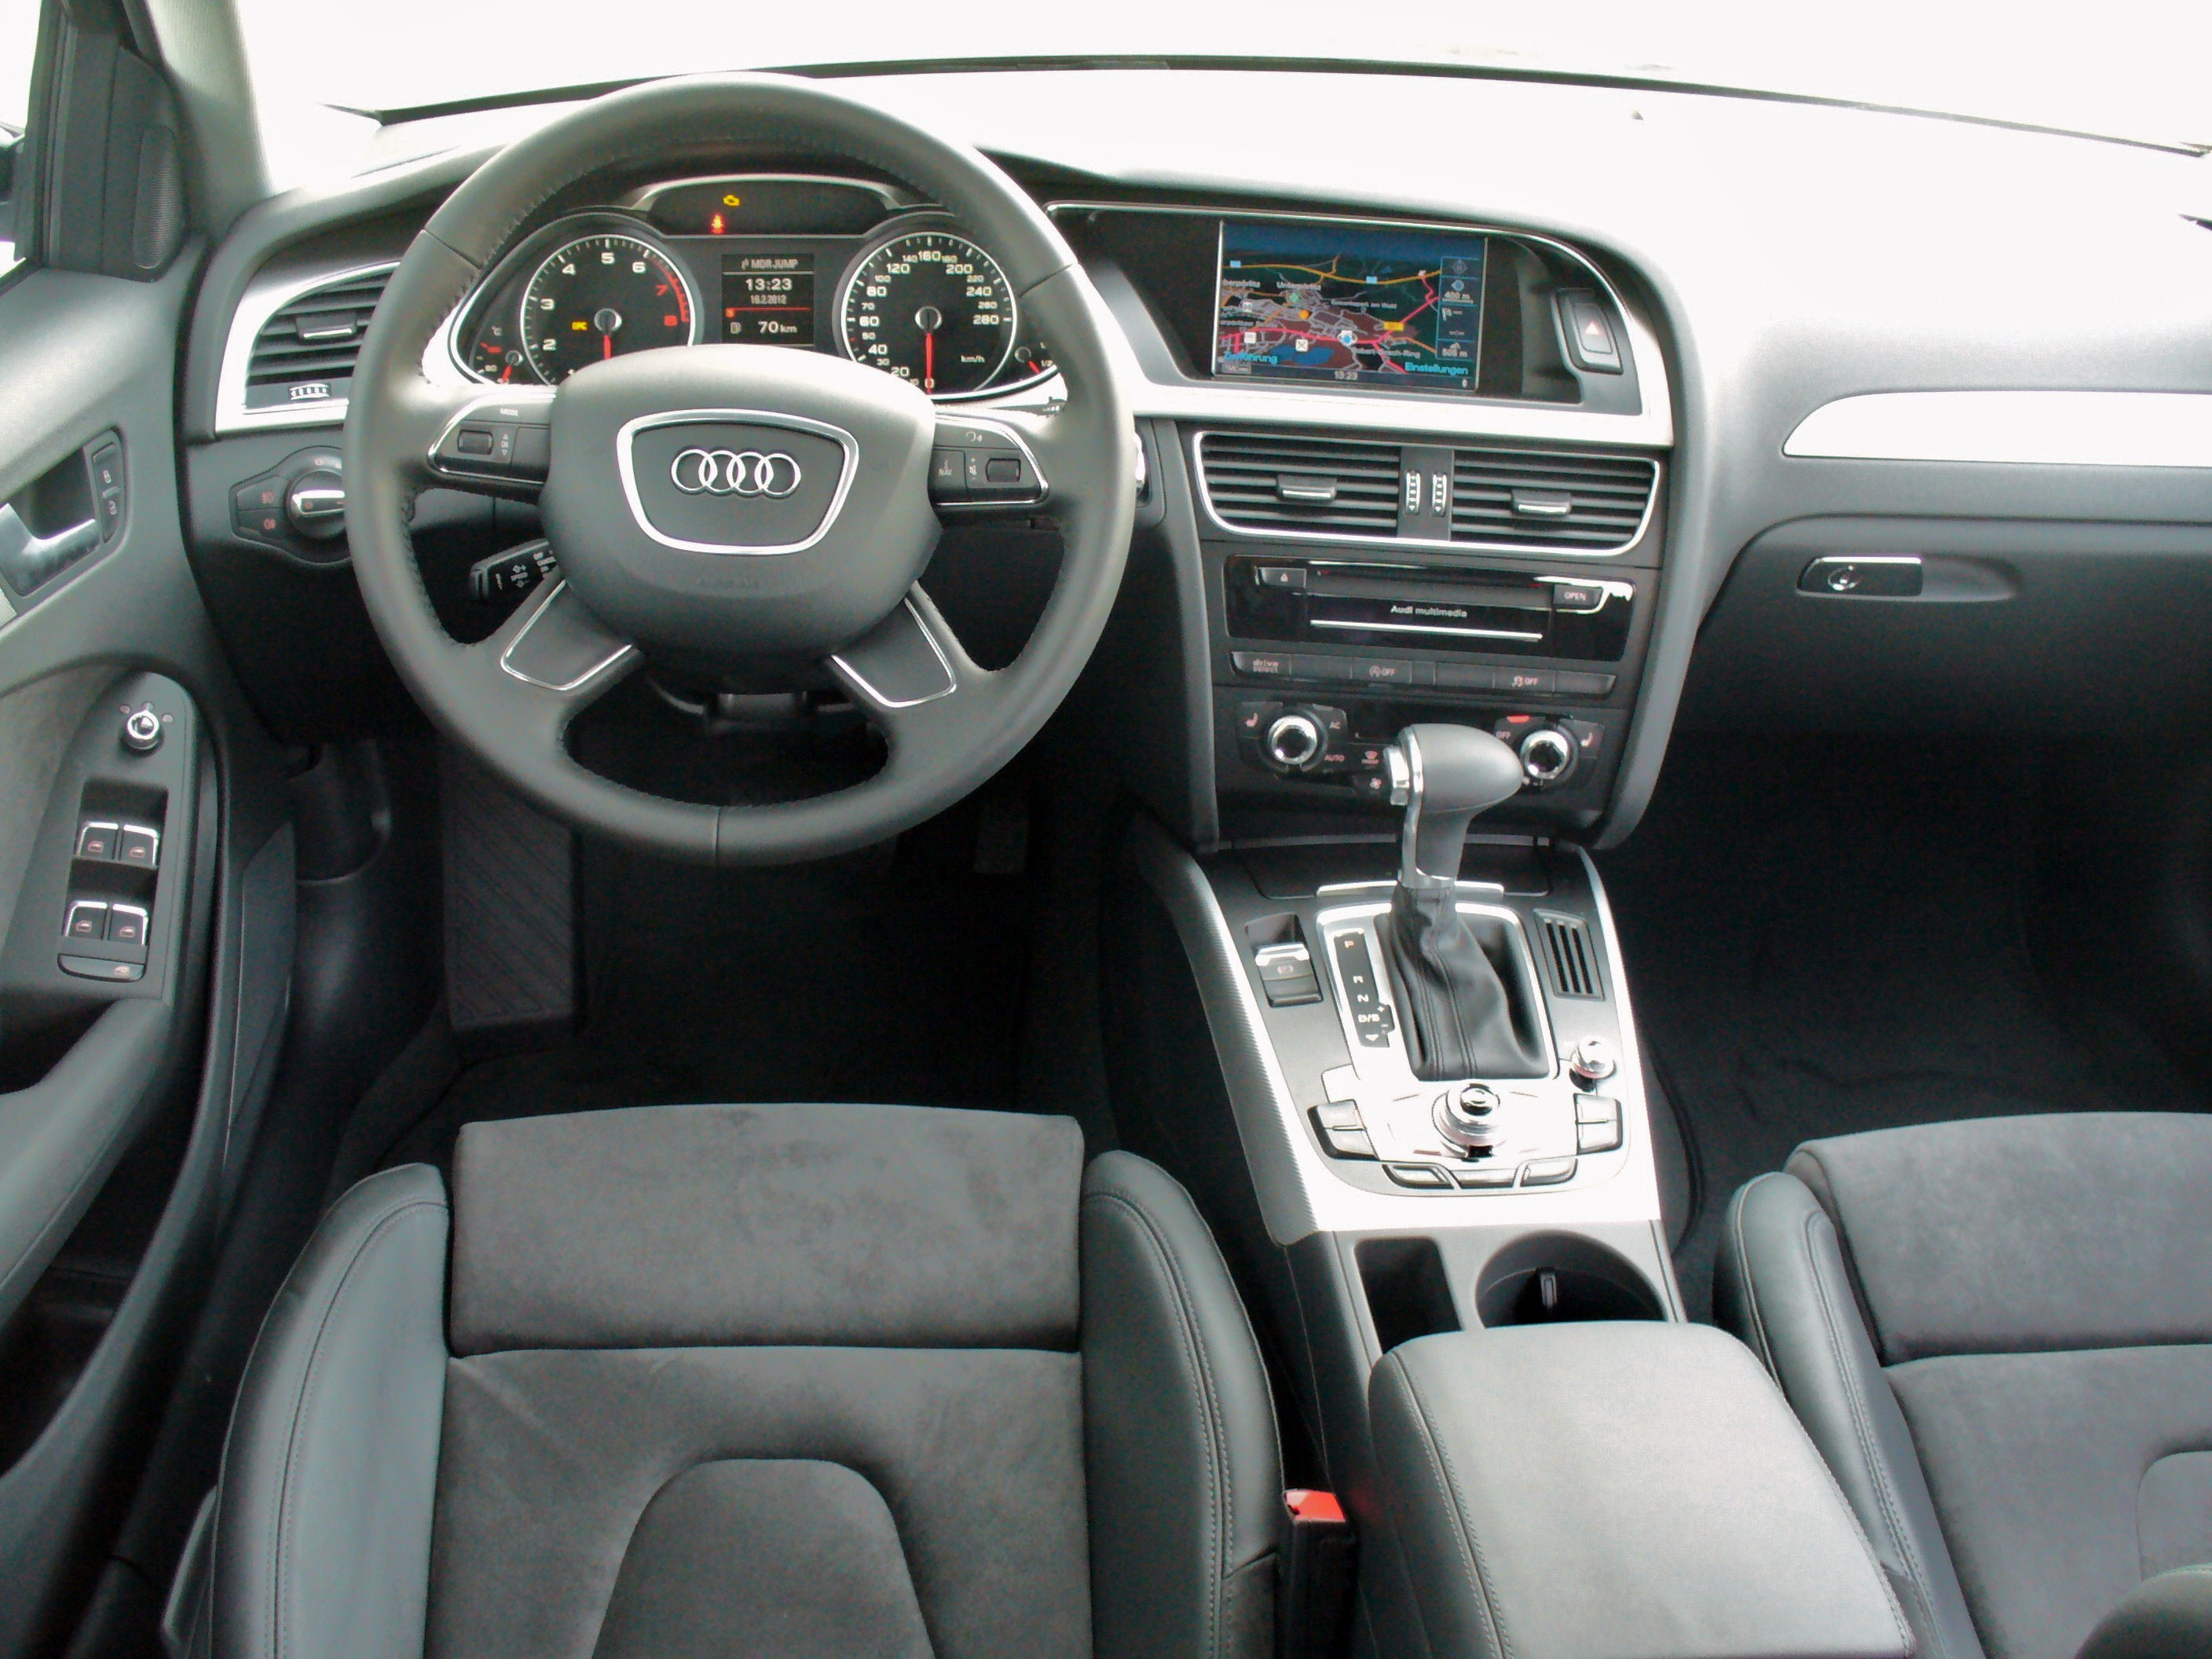 datei audi a4 b8 facelift allroad quattro 2 0 tfsi s tronic phantomschwarz interieur jpg wikipedia. Black Bedroom Furniture Sets. Home Design Ideas